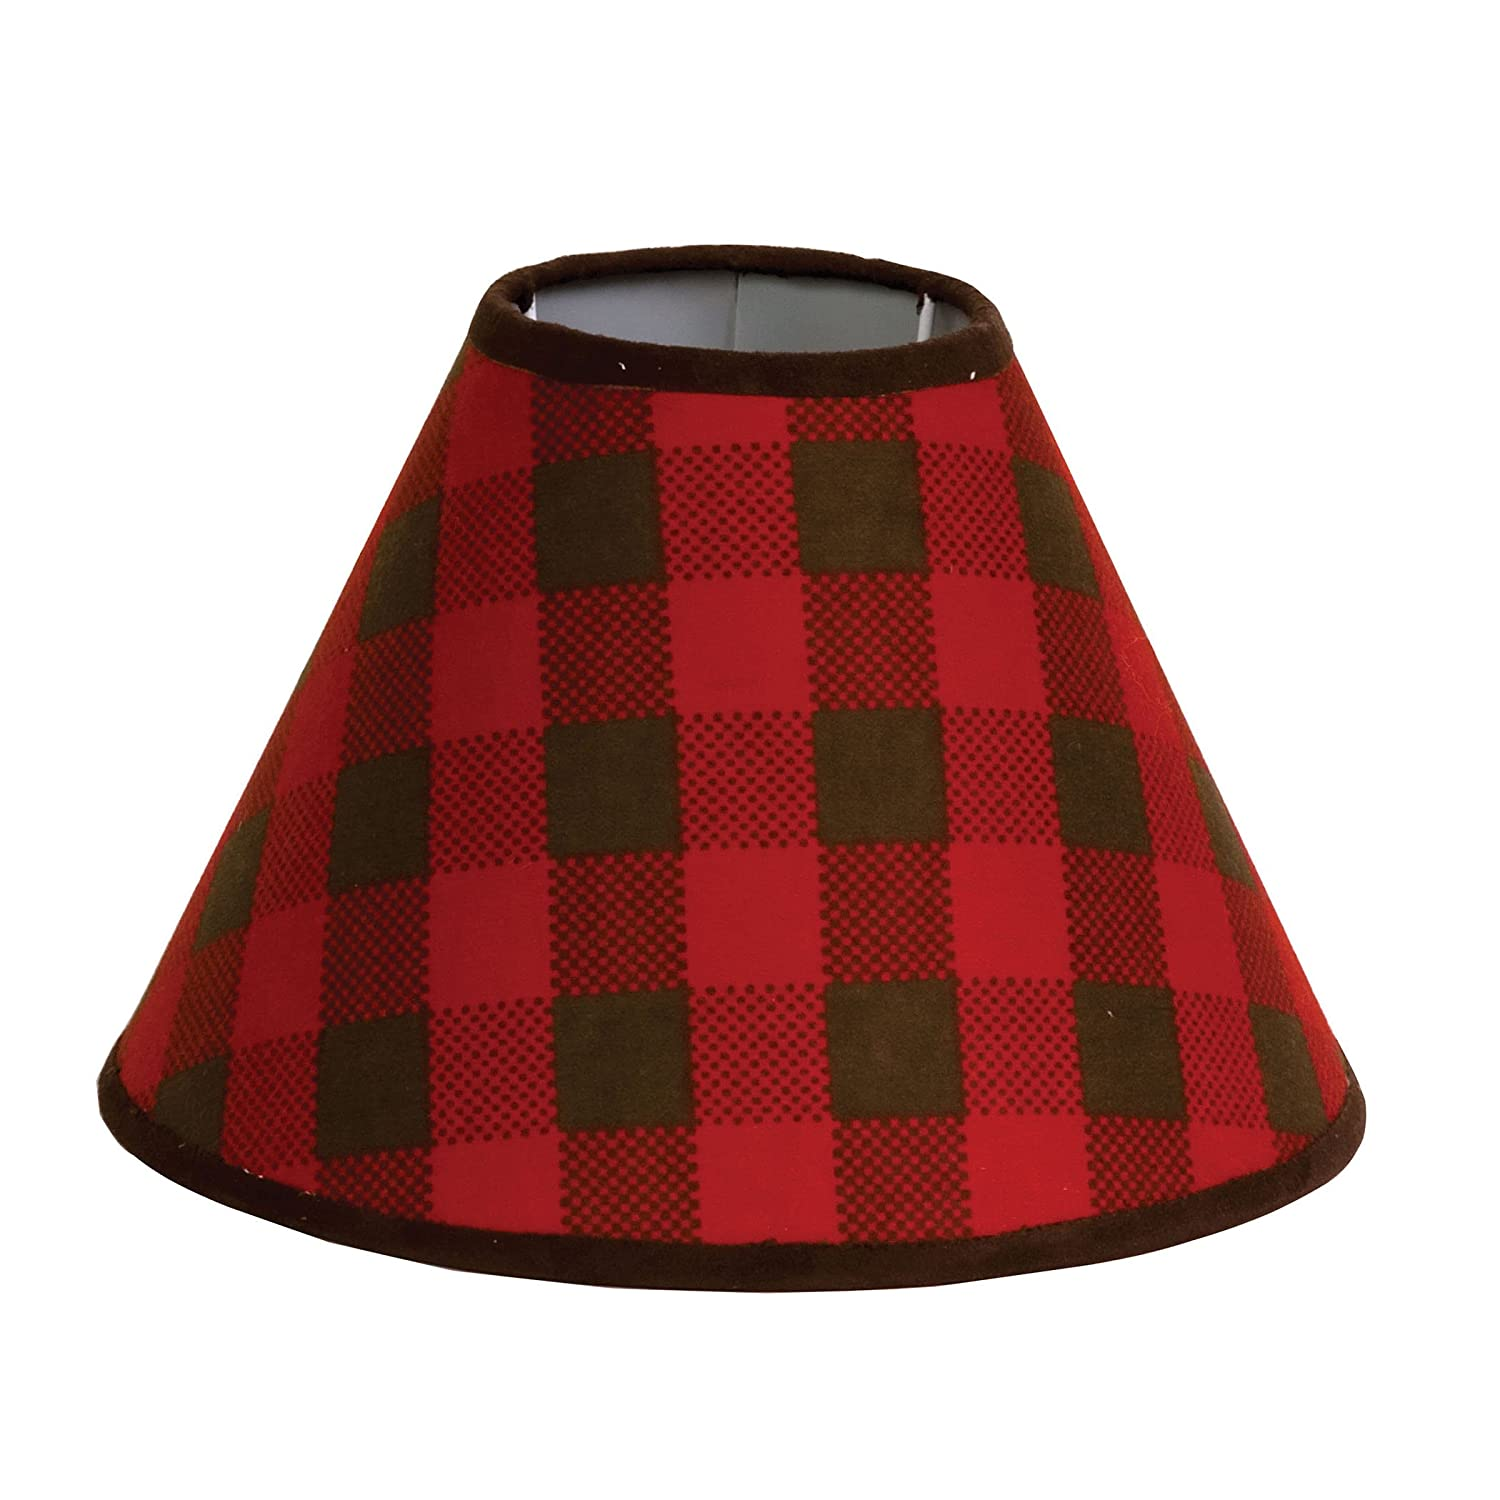 Amazon.com: Trend Lab Northwoods Lamp Shade: Baby for Lamp Shade Clip Art  166kxo